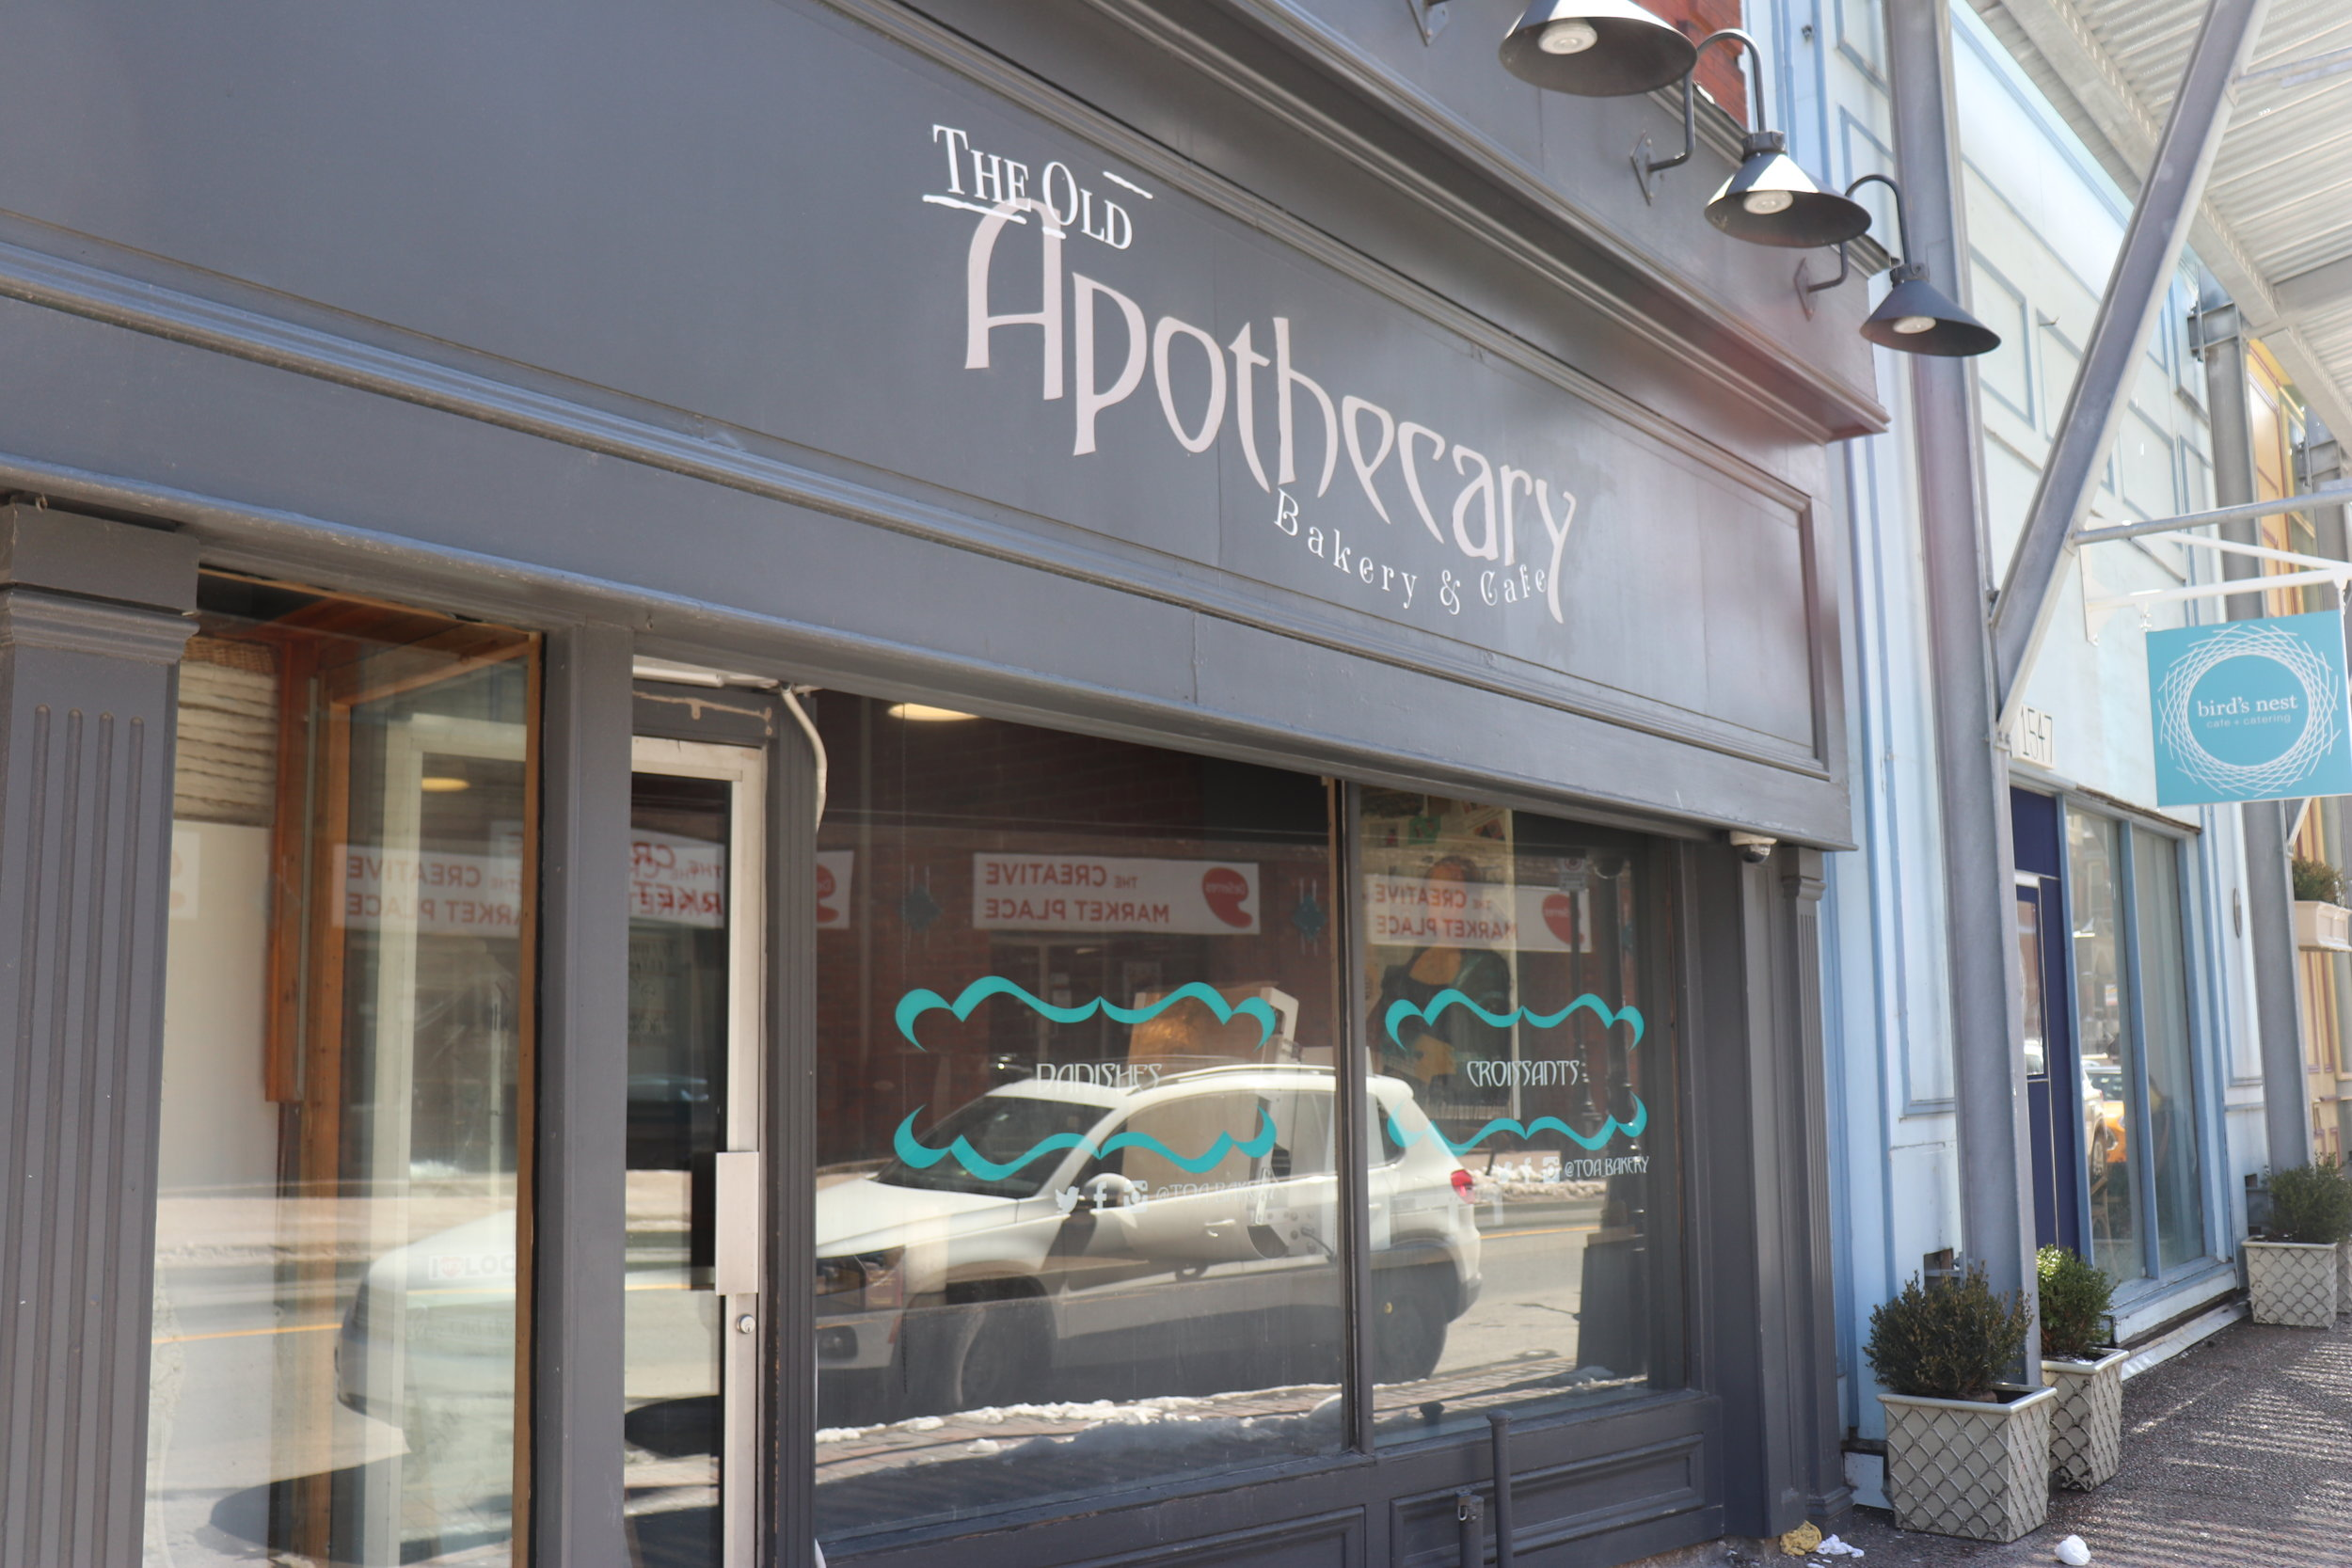 1. The Old Apothecary - Bakery and Cafe